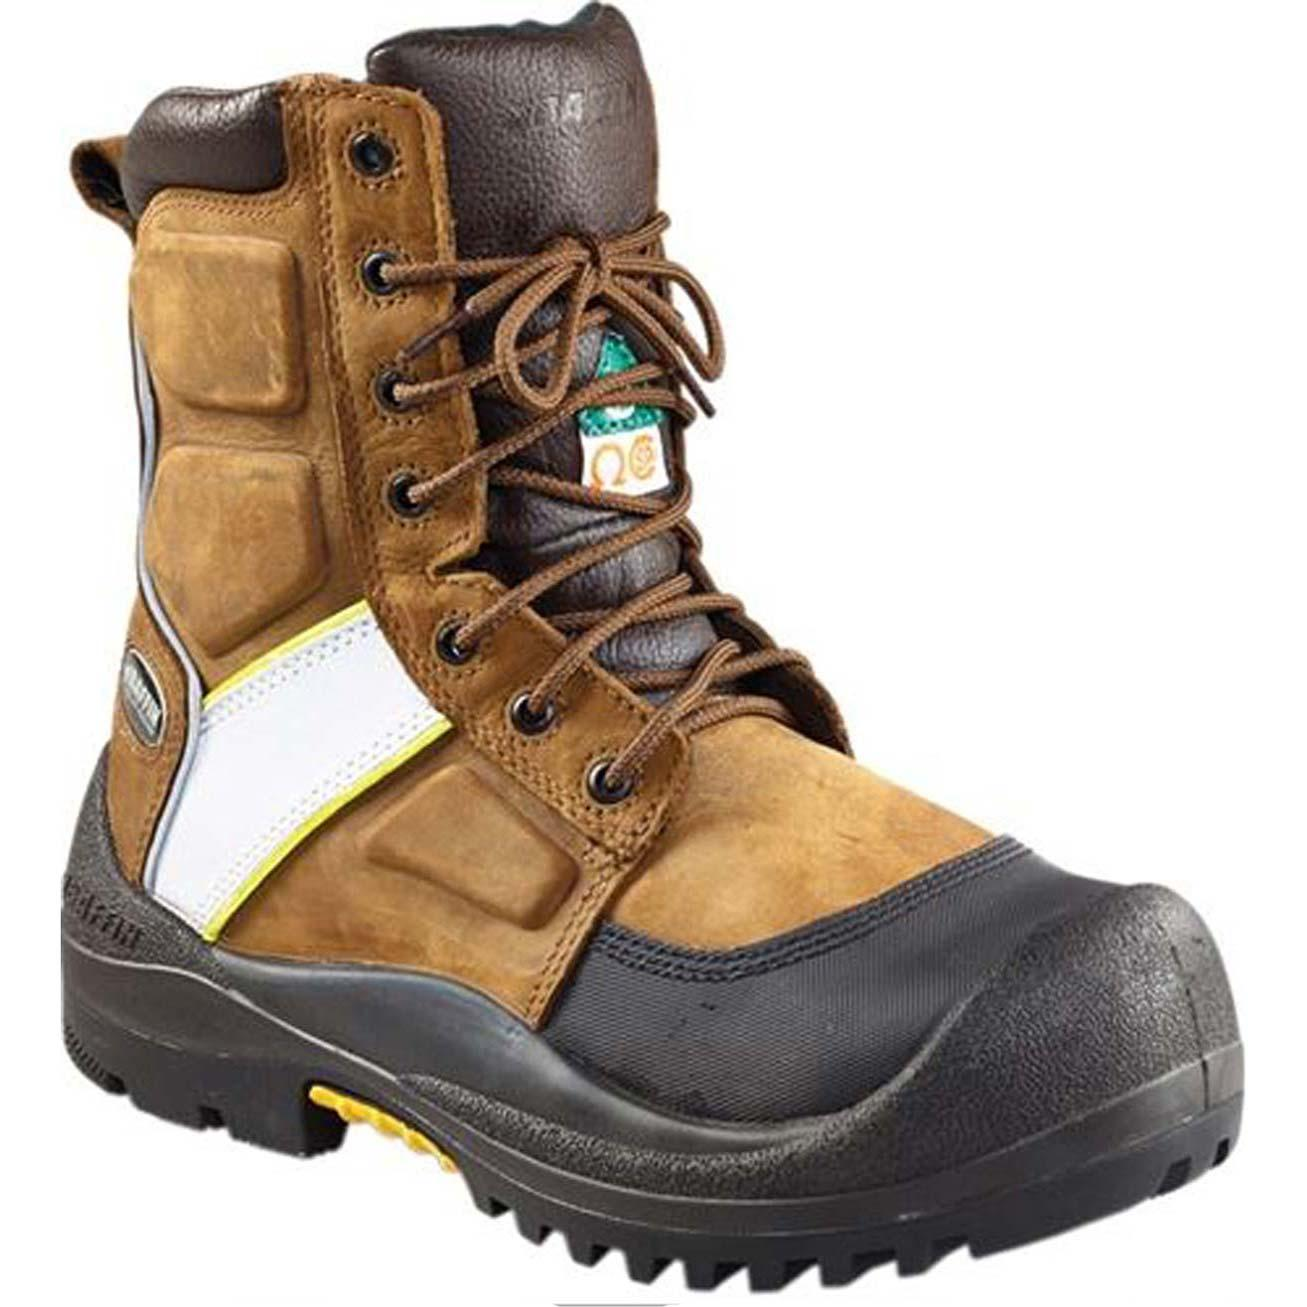 exceptional range of styles and colors latest selection info for Baffin Premium Worker Hi-Viz Composite Toe CSA-Approved Puncture-Resistant  Waterproof Insulated Work Boot